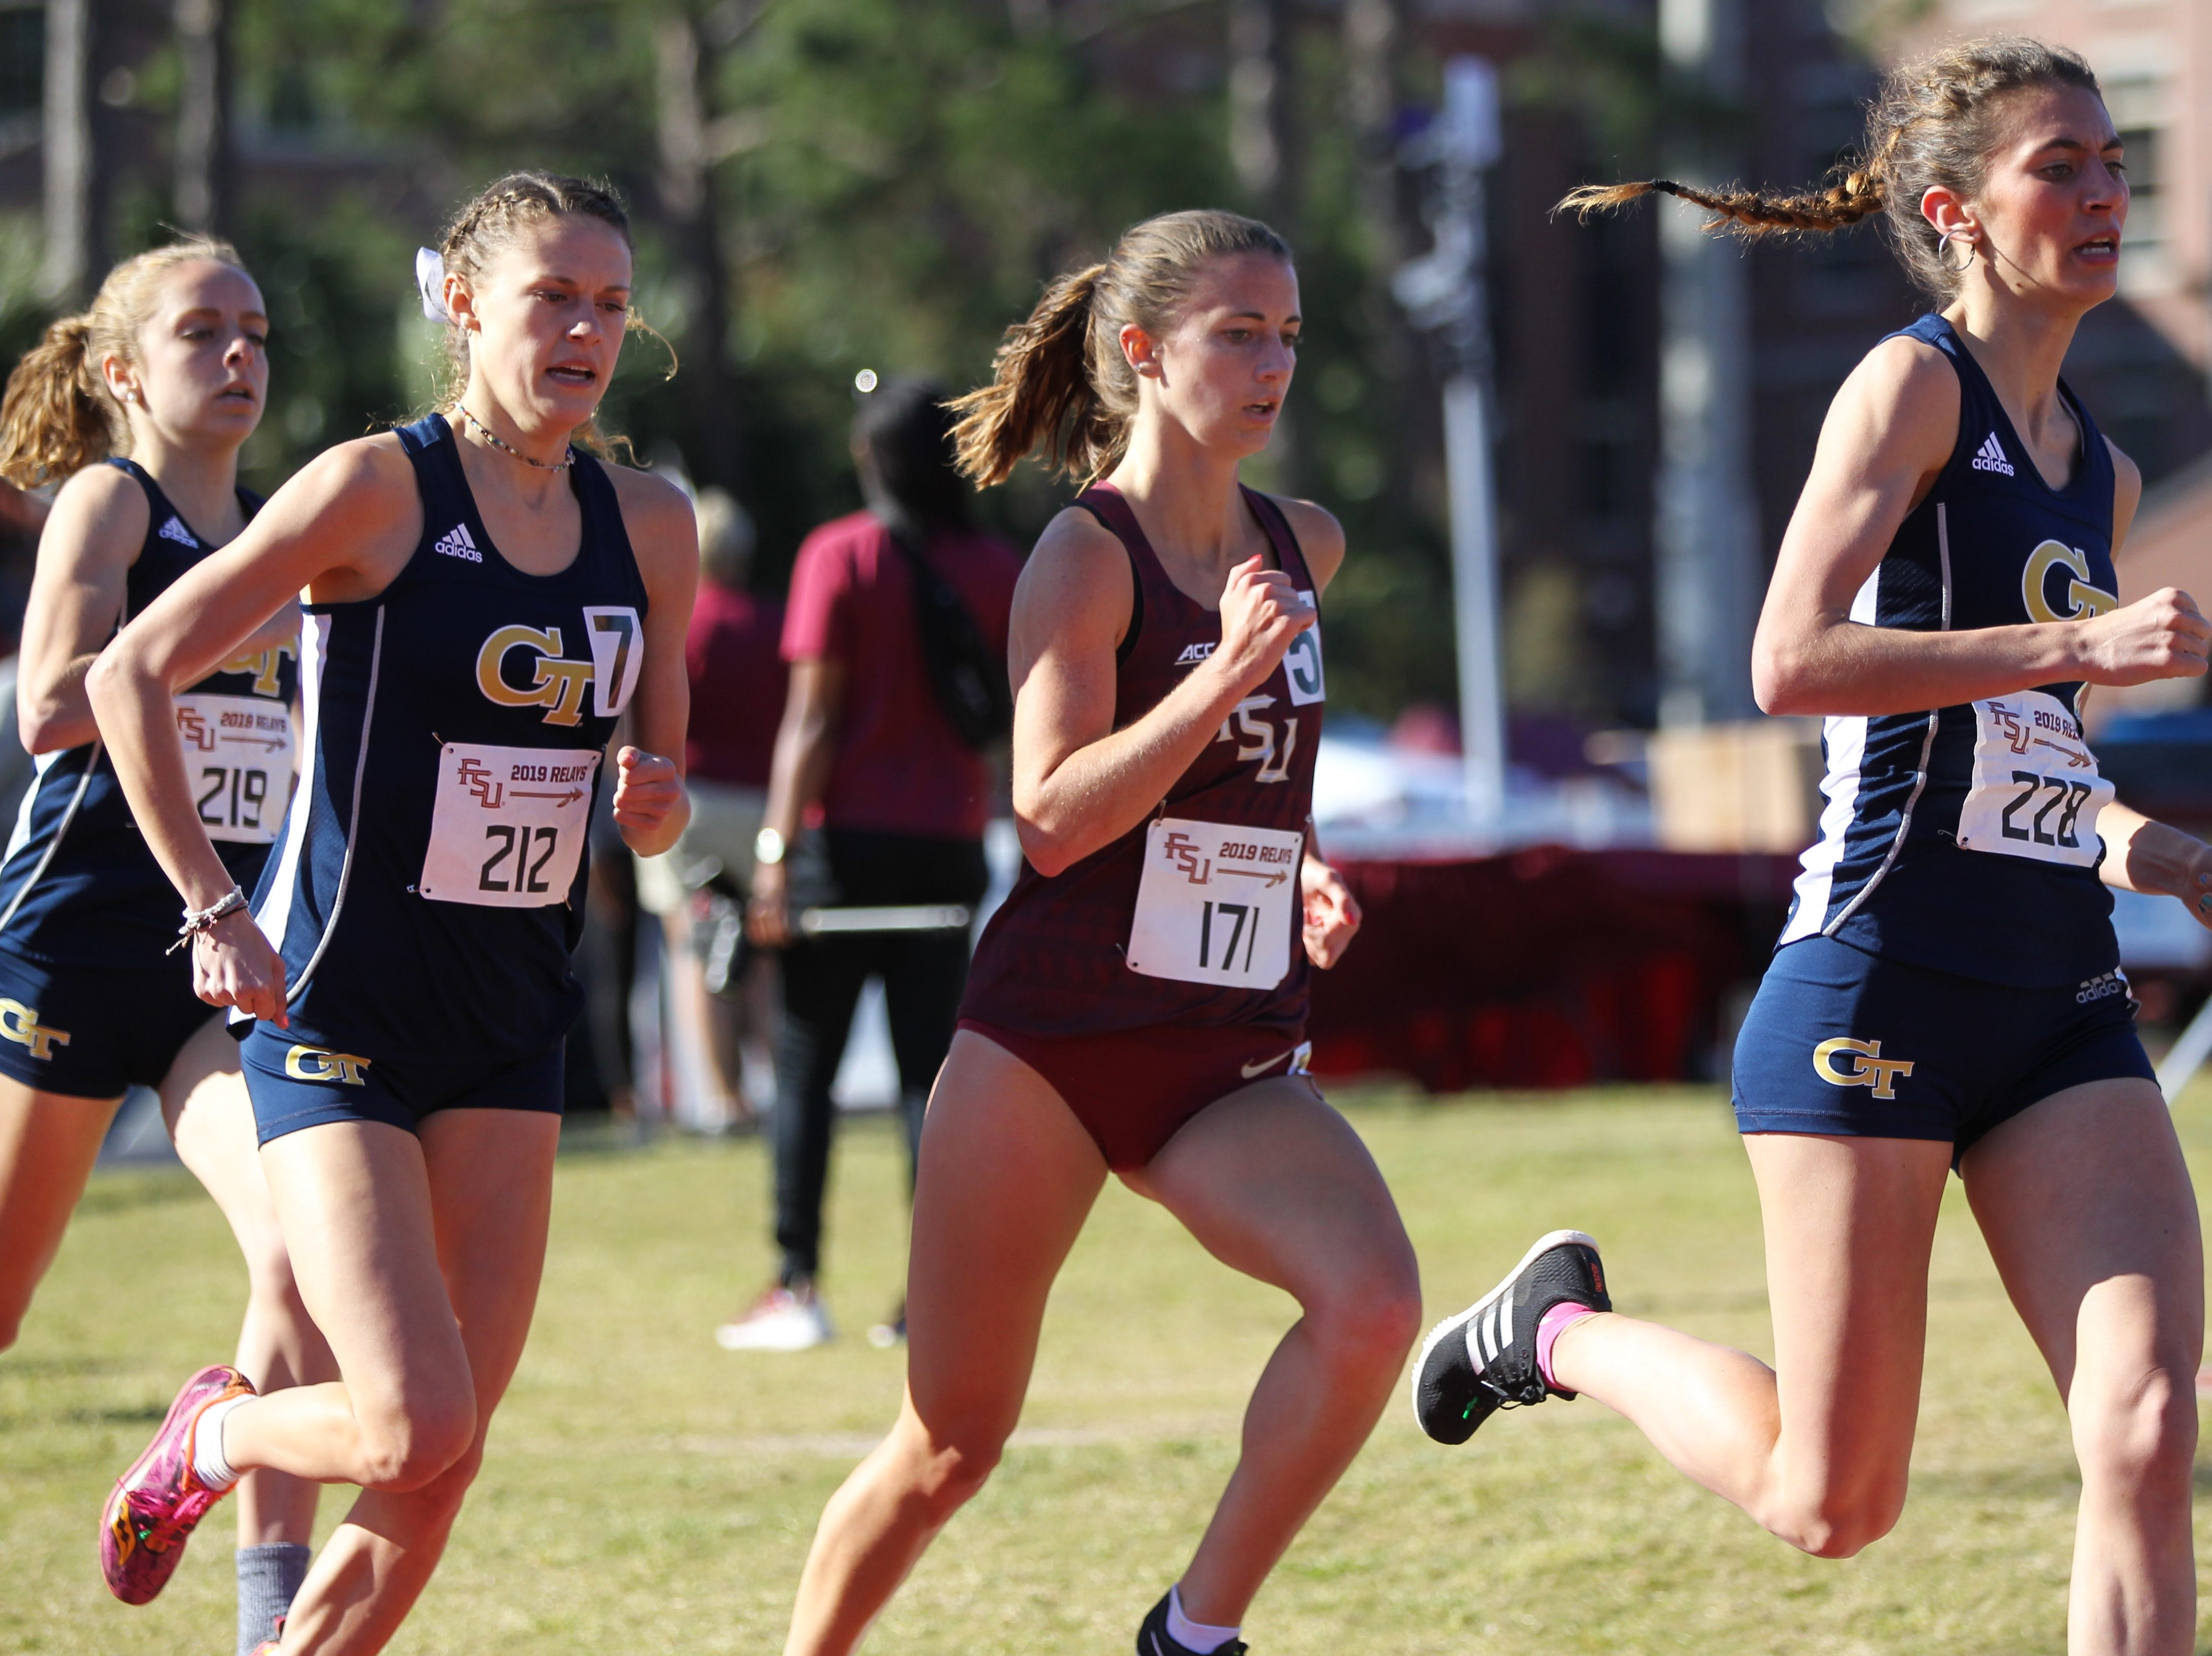 Florida State junior Megan Mooney races the 1500-meter run during Friday's college portion of the FSU Relays at Mike Long Track on March 22, 2019.